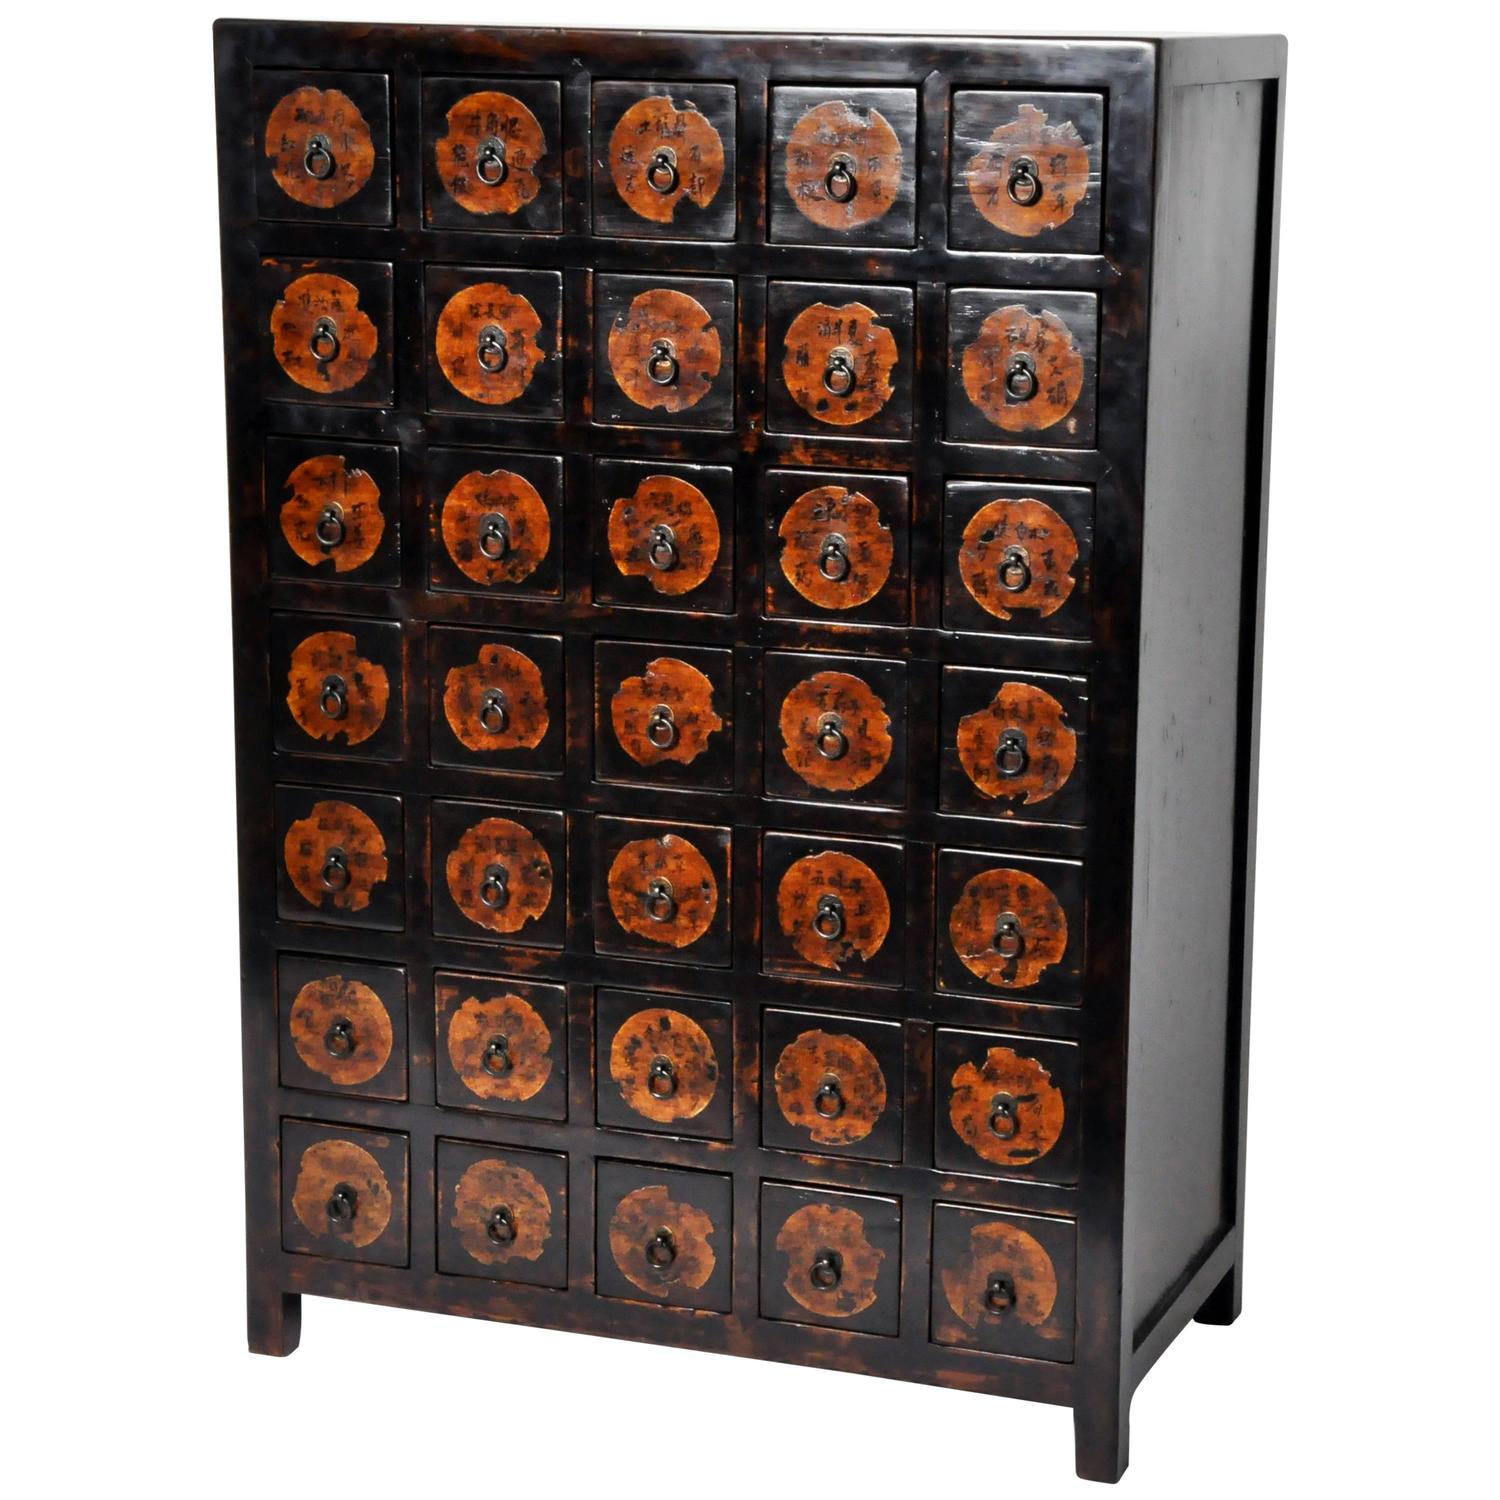 Chinese Apothecary Cabinet For Sale at 1stdibs